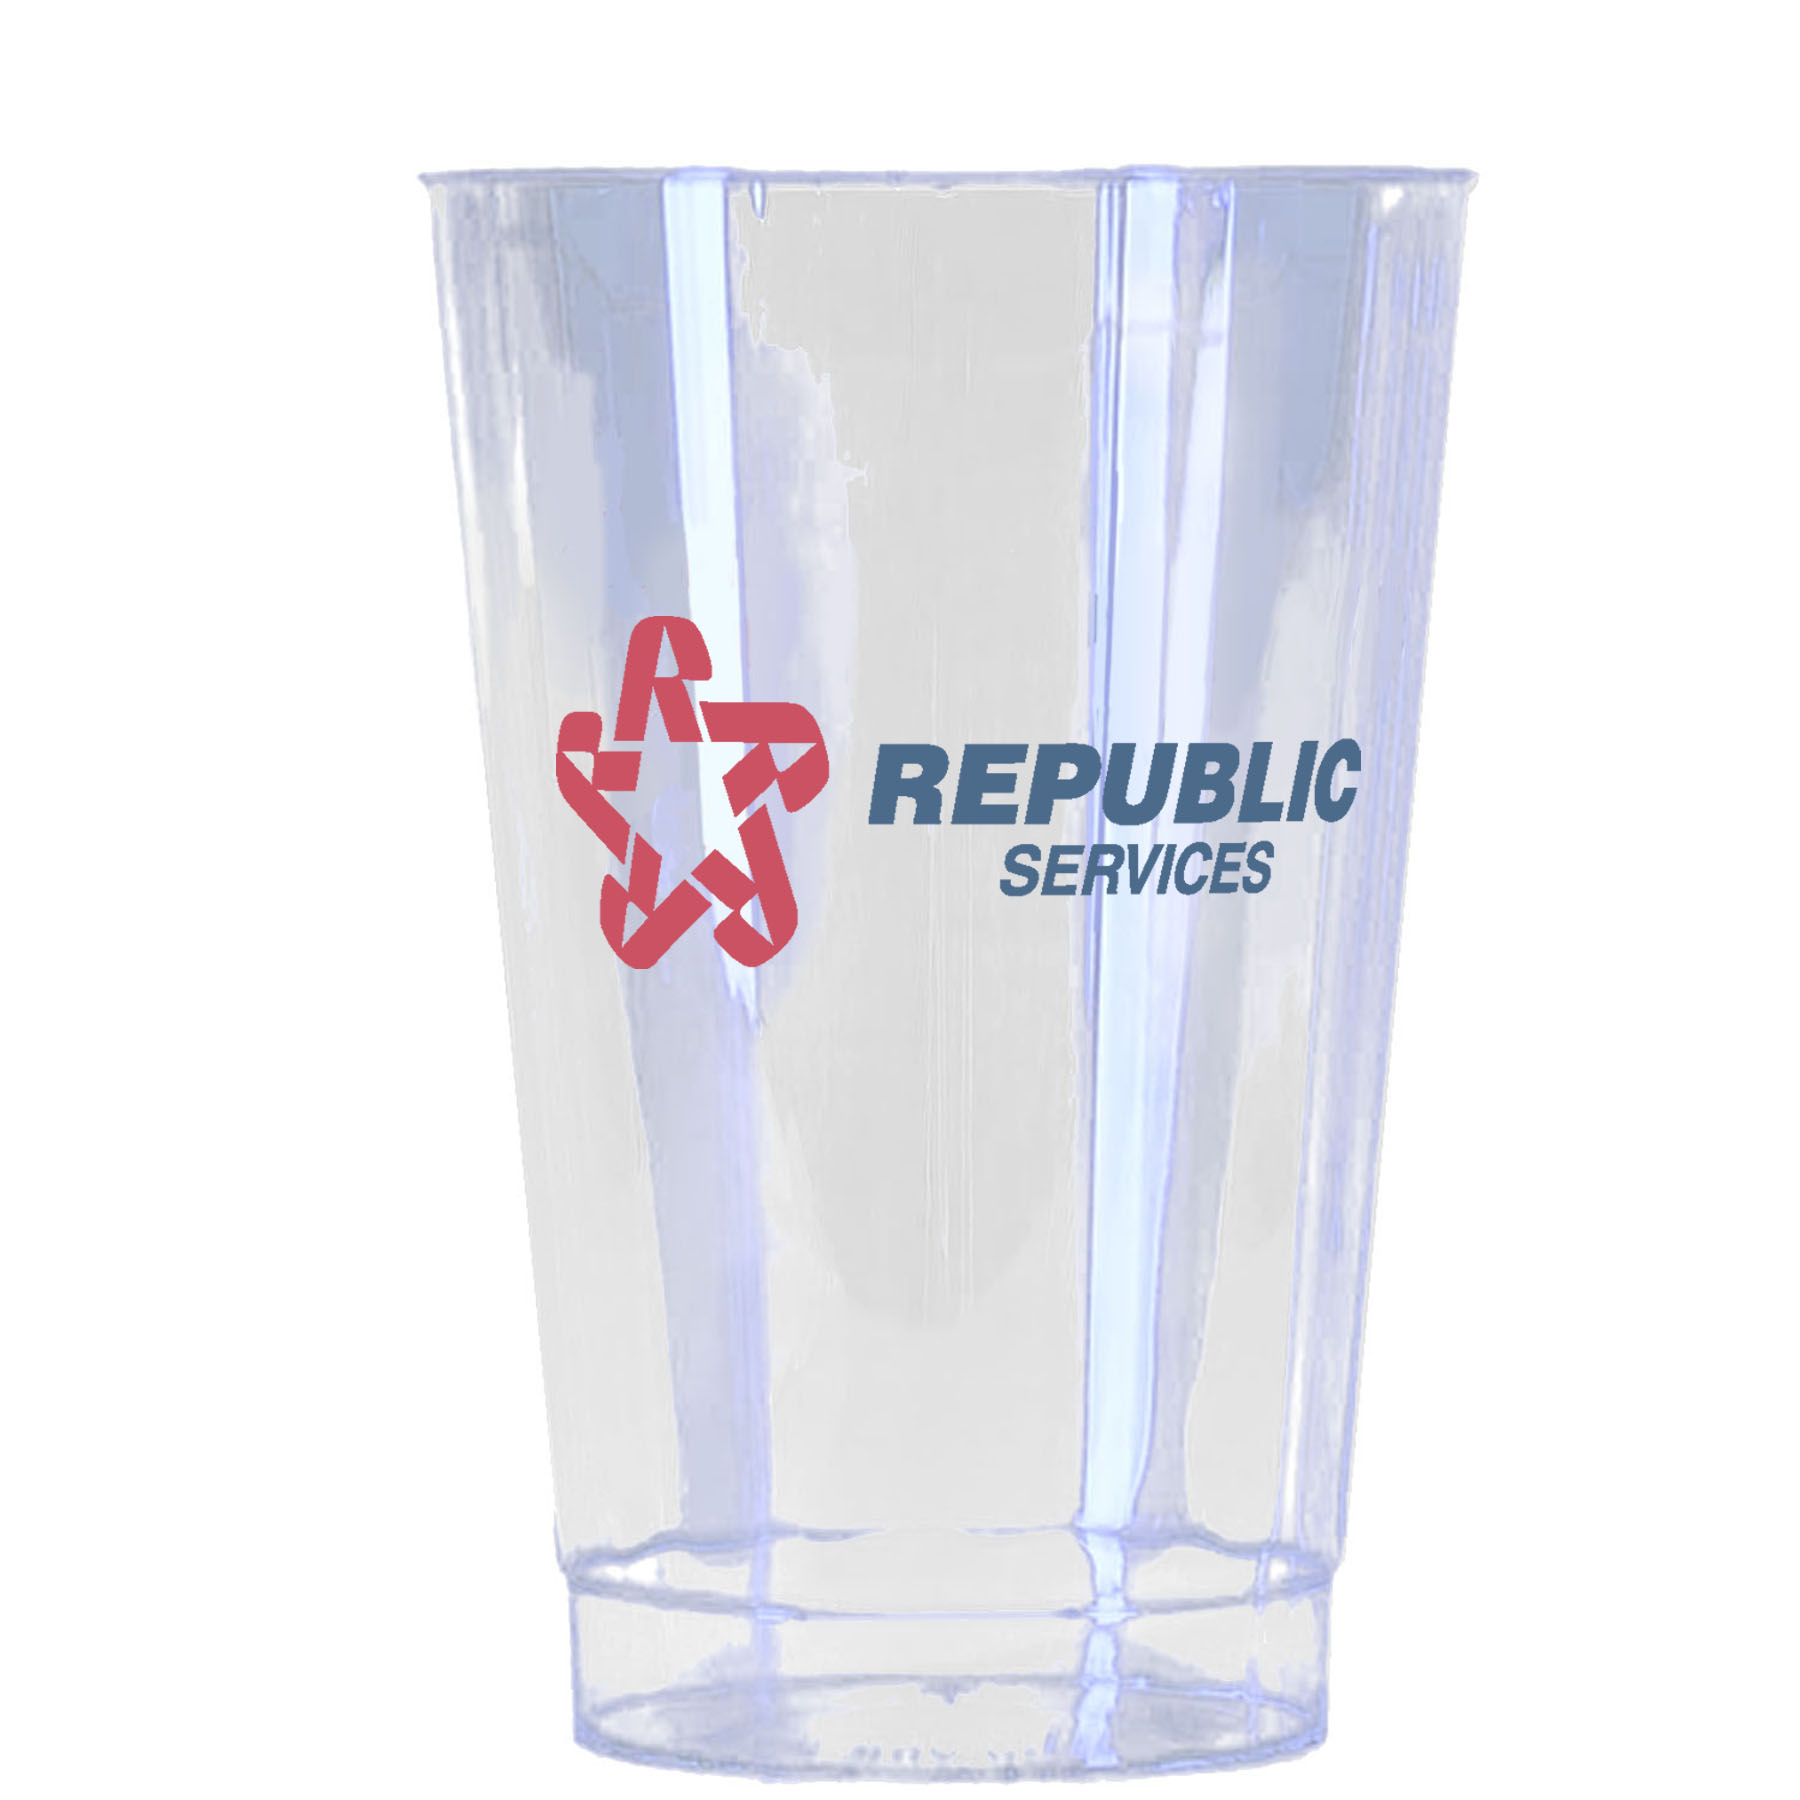 12 Oz. Tall Tumbler - Clear & Classic Crystal® Cups - The 500 Line